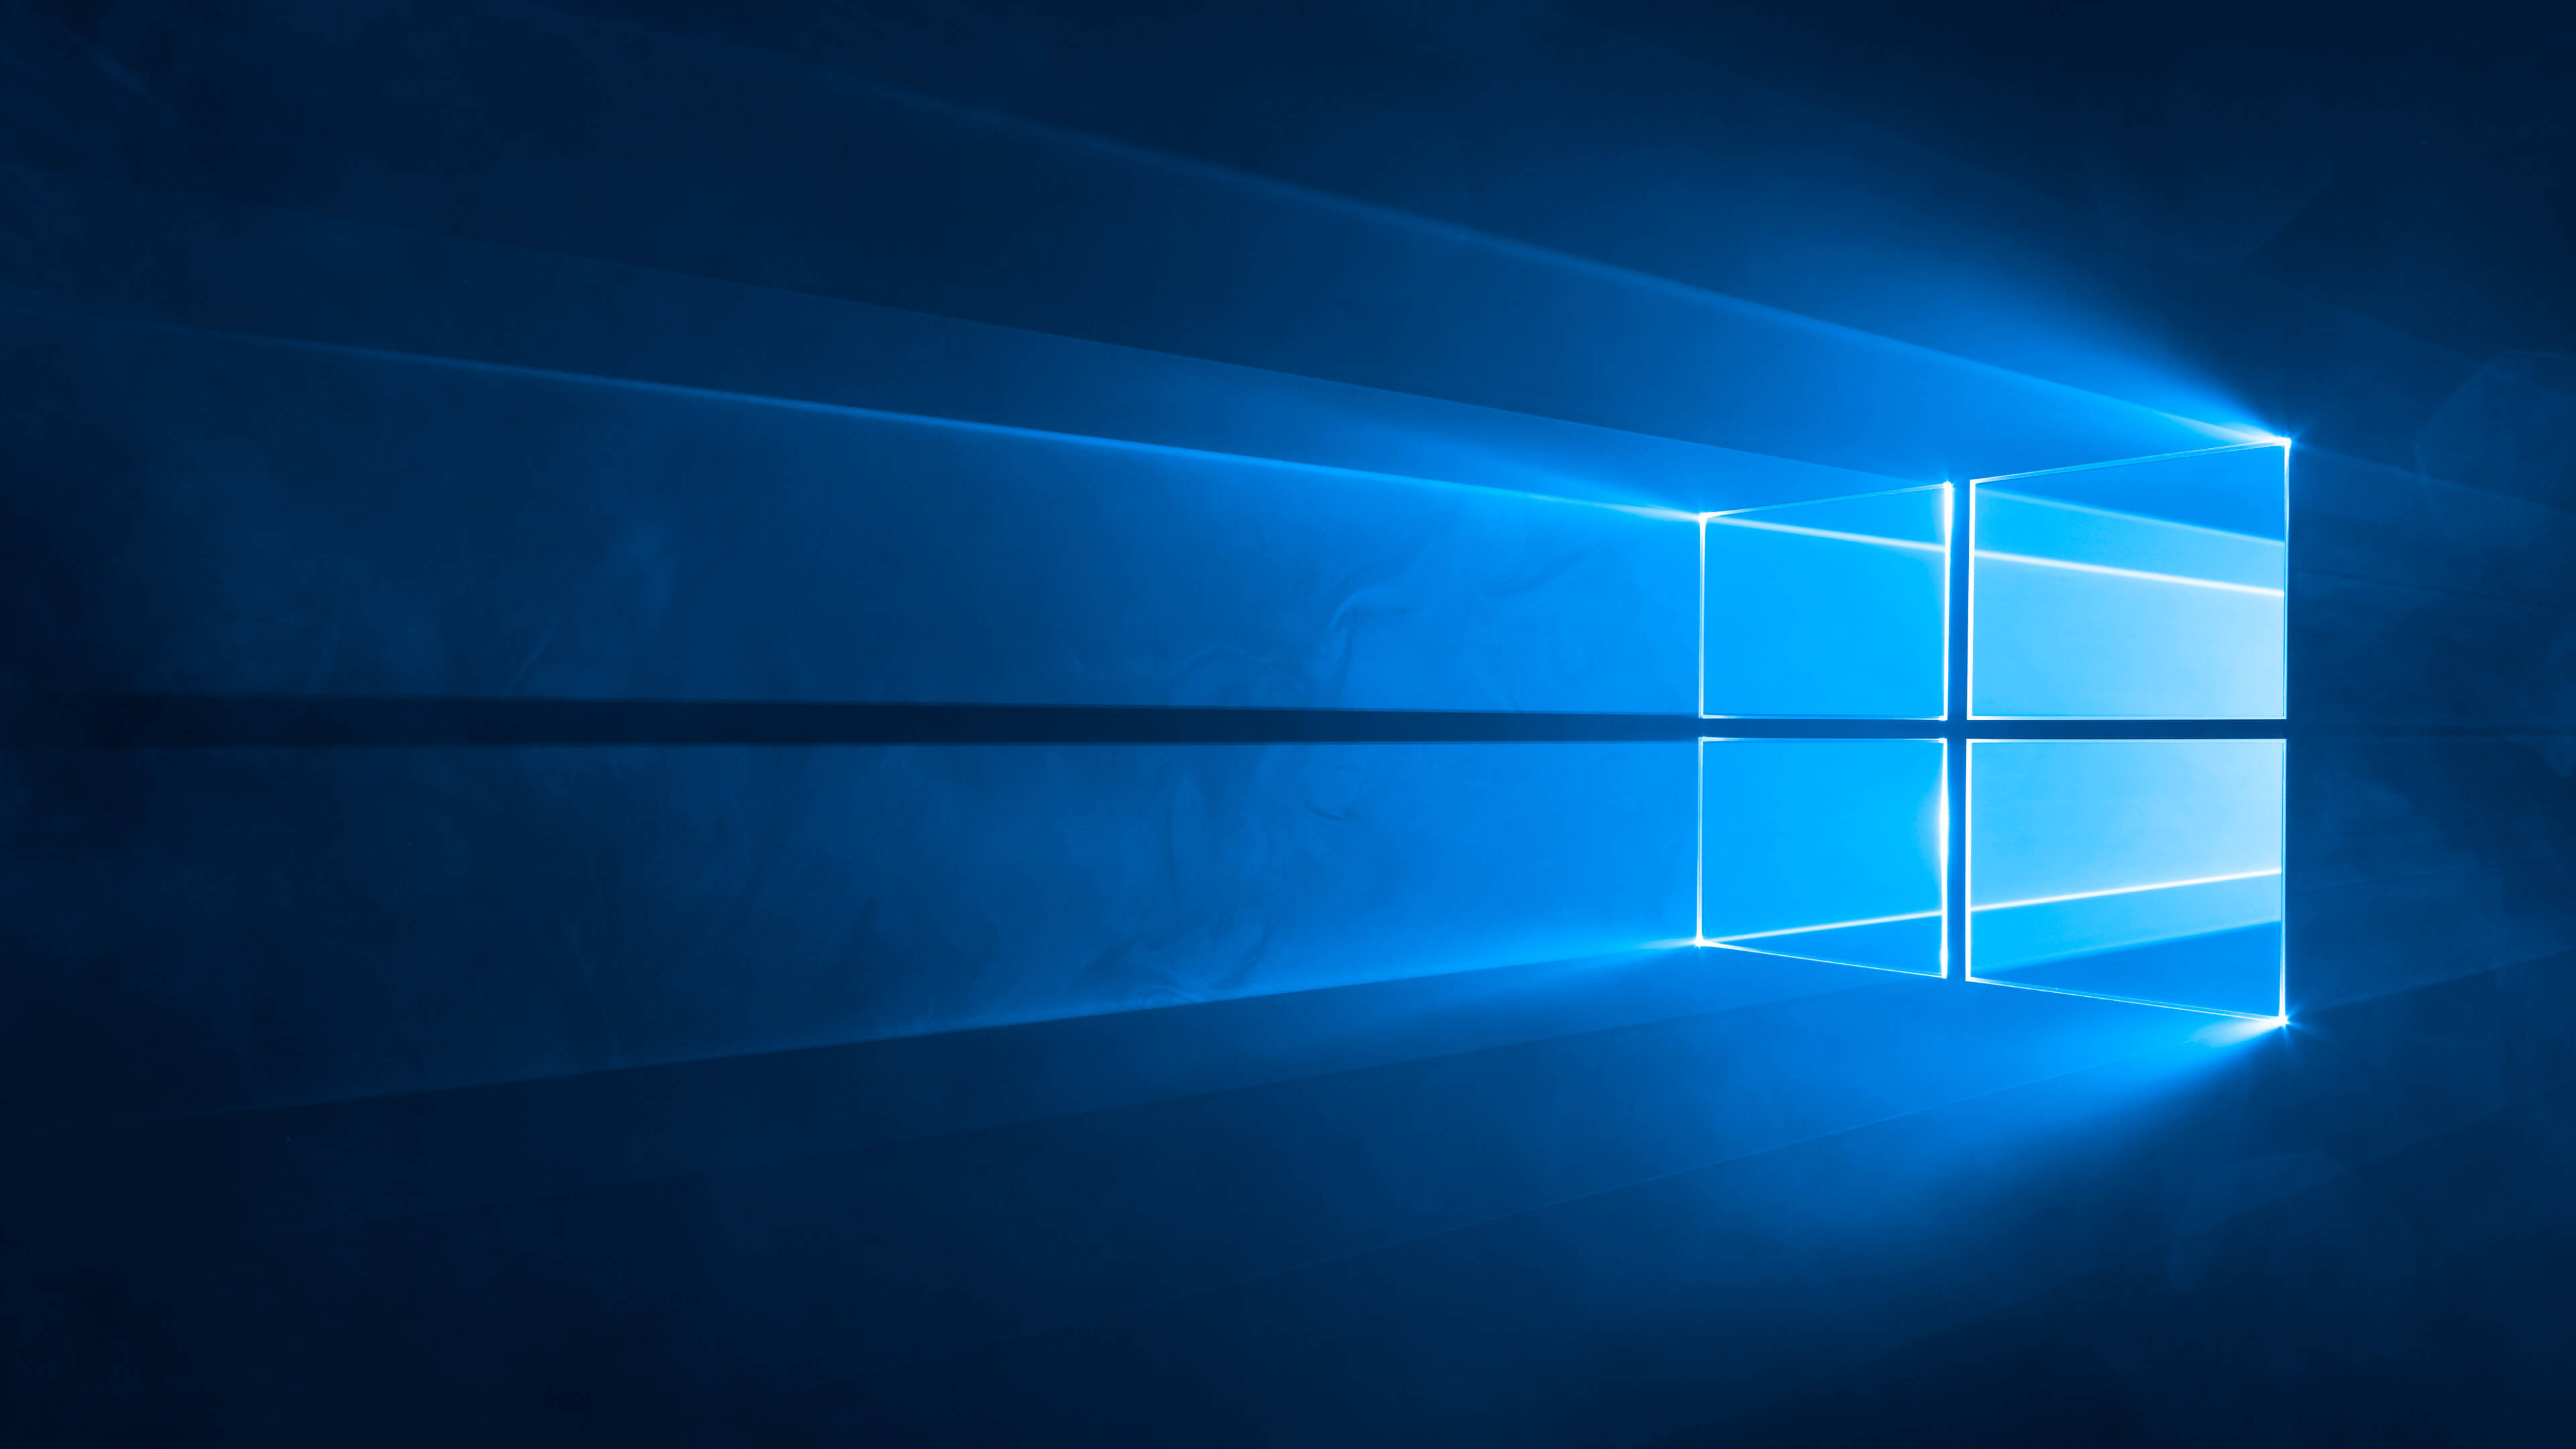 windows-10-hd-wallpaper